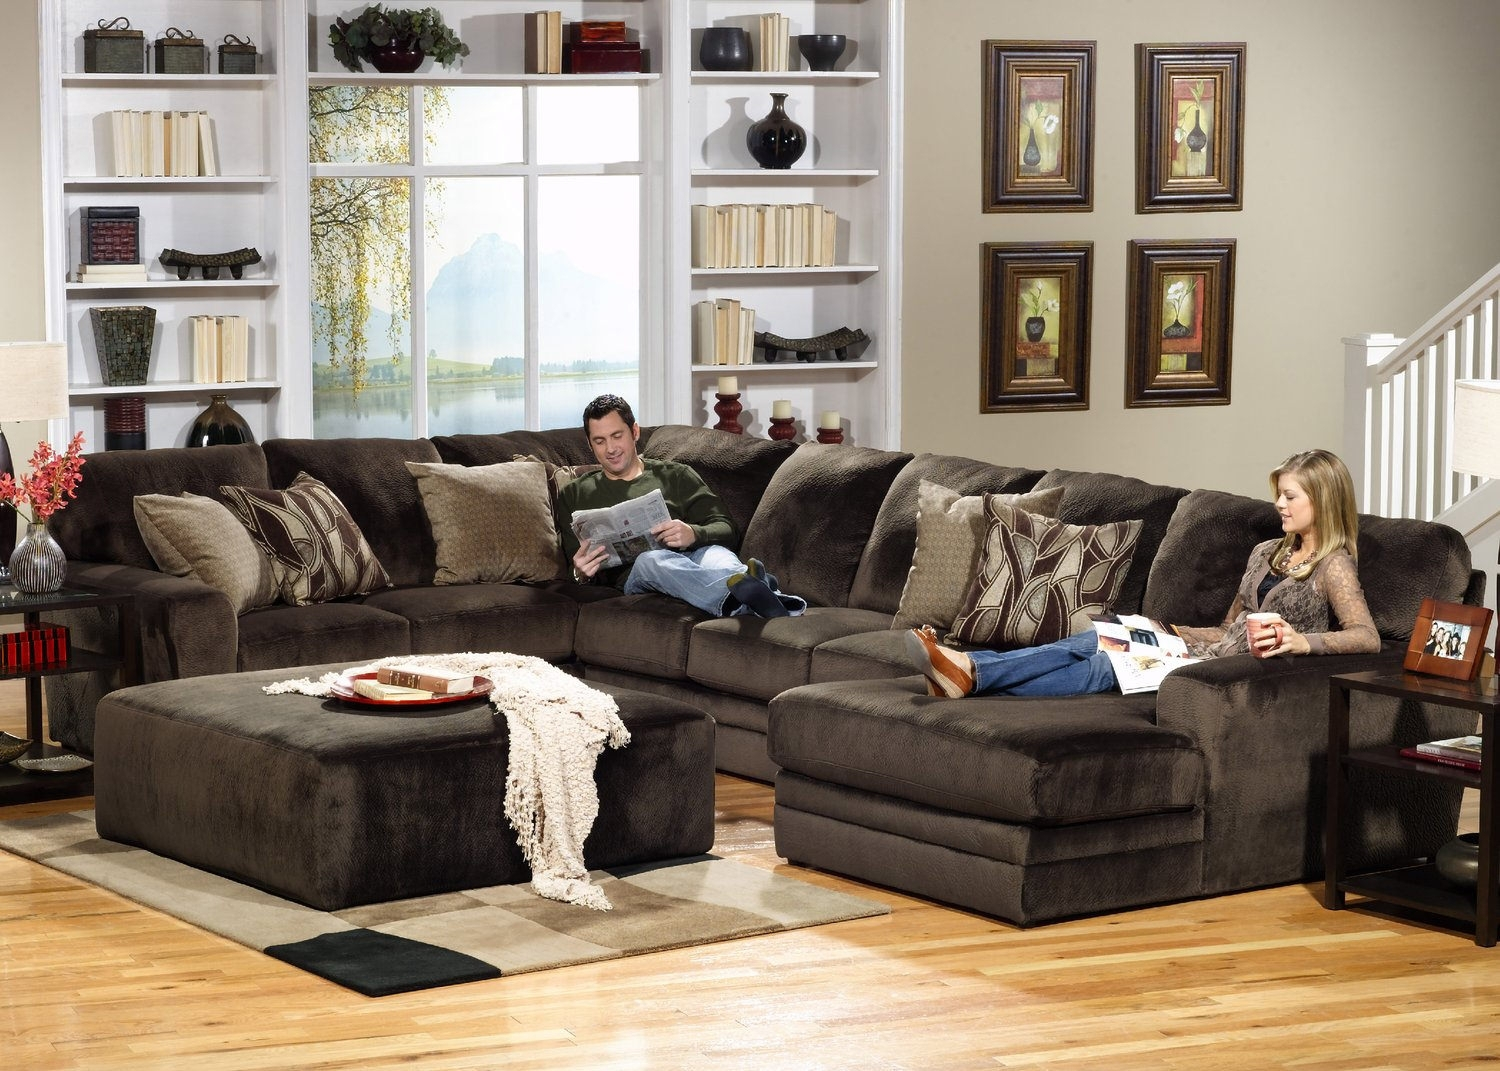 Rainier 3 Piece Sectional | Hom Furniture Within St Cloud Mn Sectional Sofas (View 4 of 10)